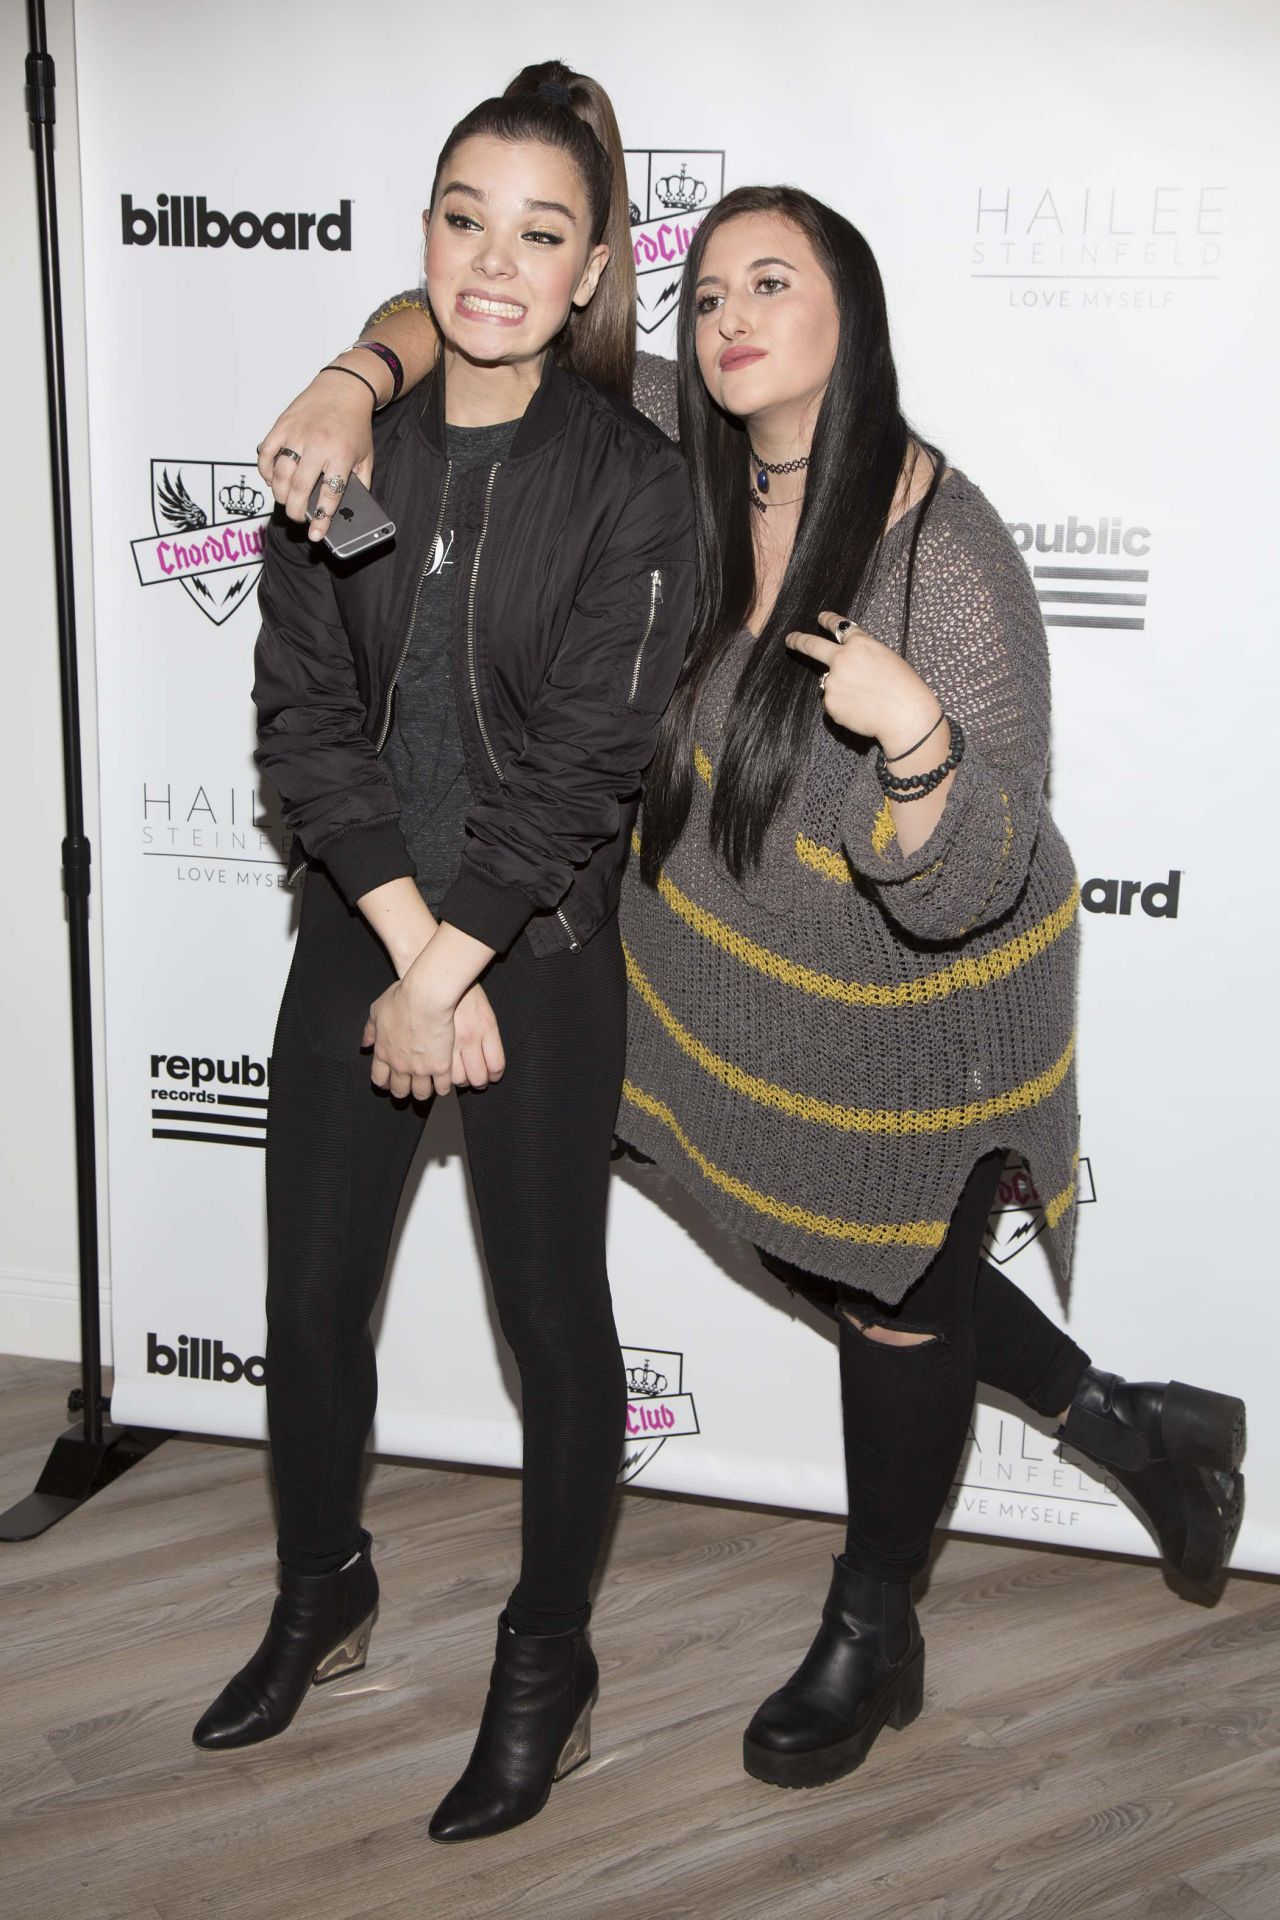 Hailee Steinfeld Meet And Greet At The Chord Club By Billboard In